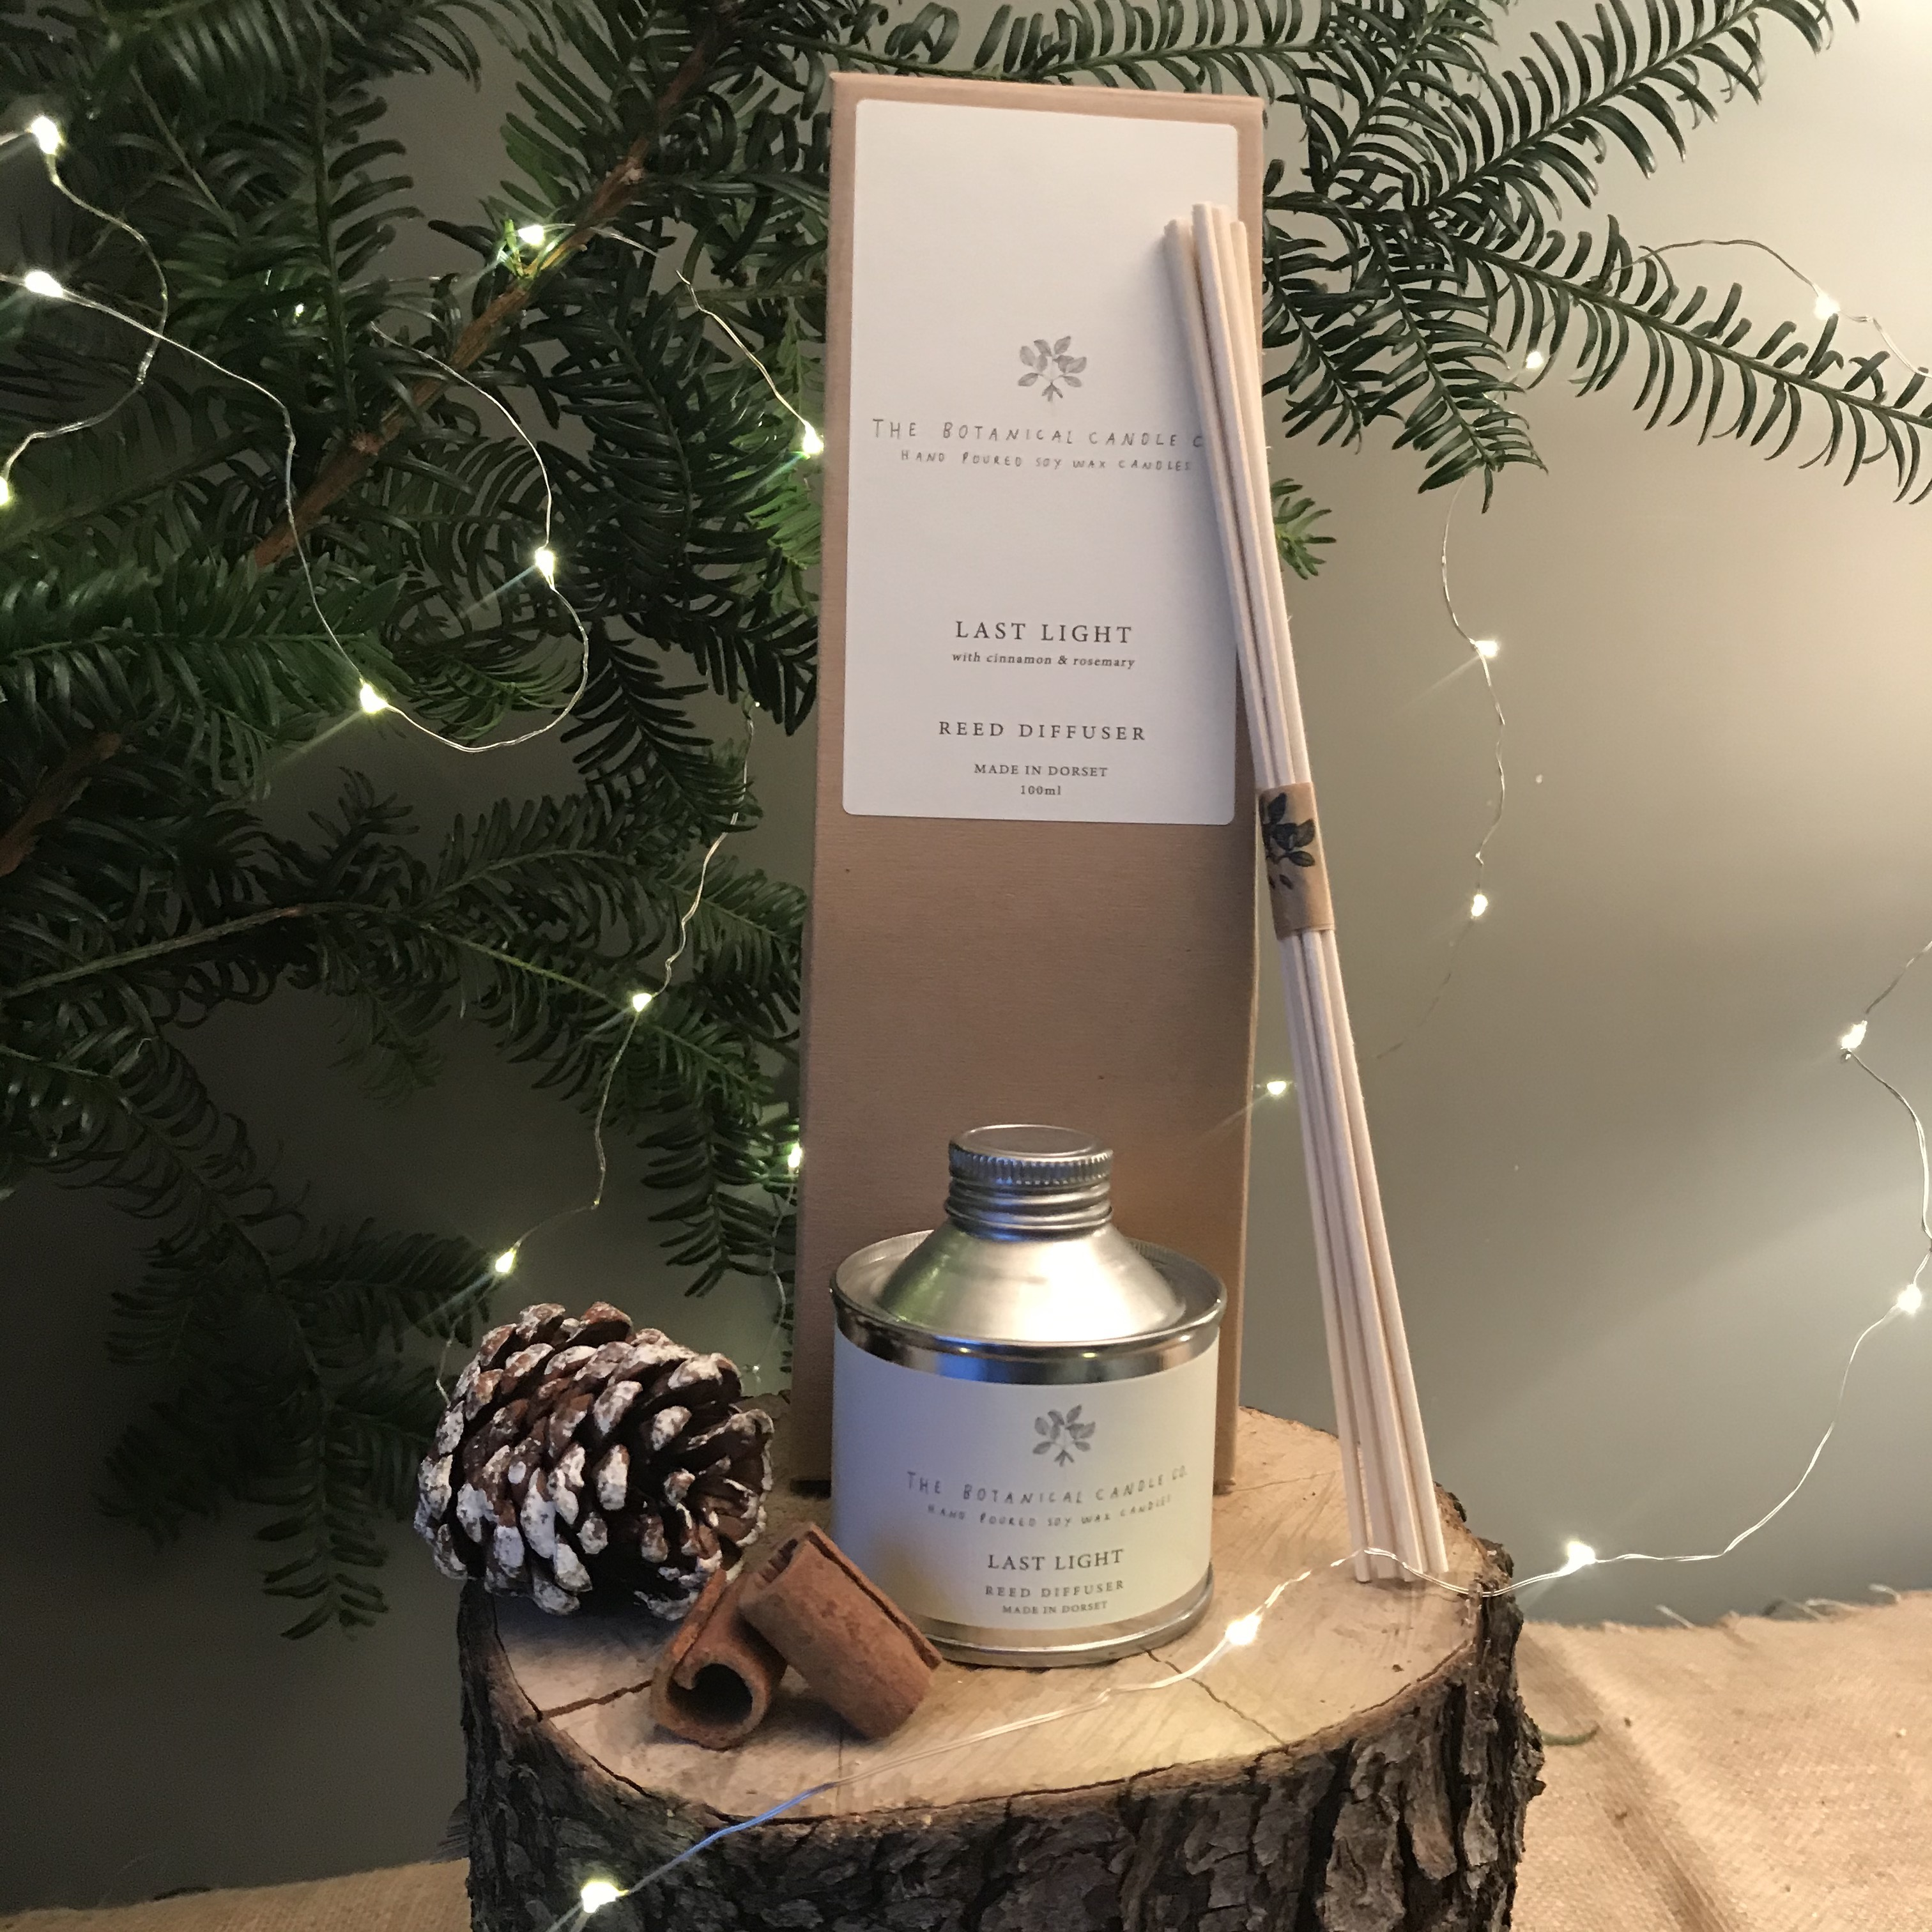 'Last Light' Winter Diffuser by Botanical Candle Co. - was £20